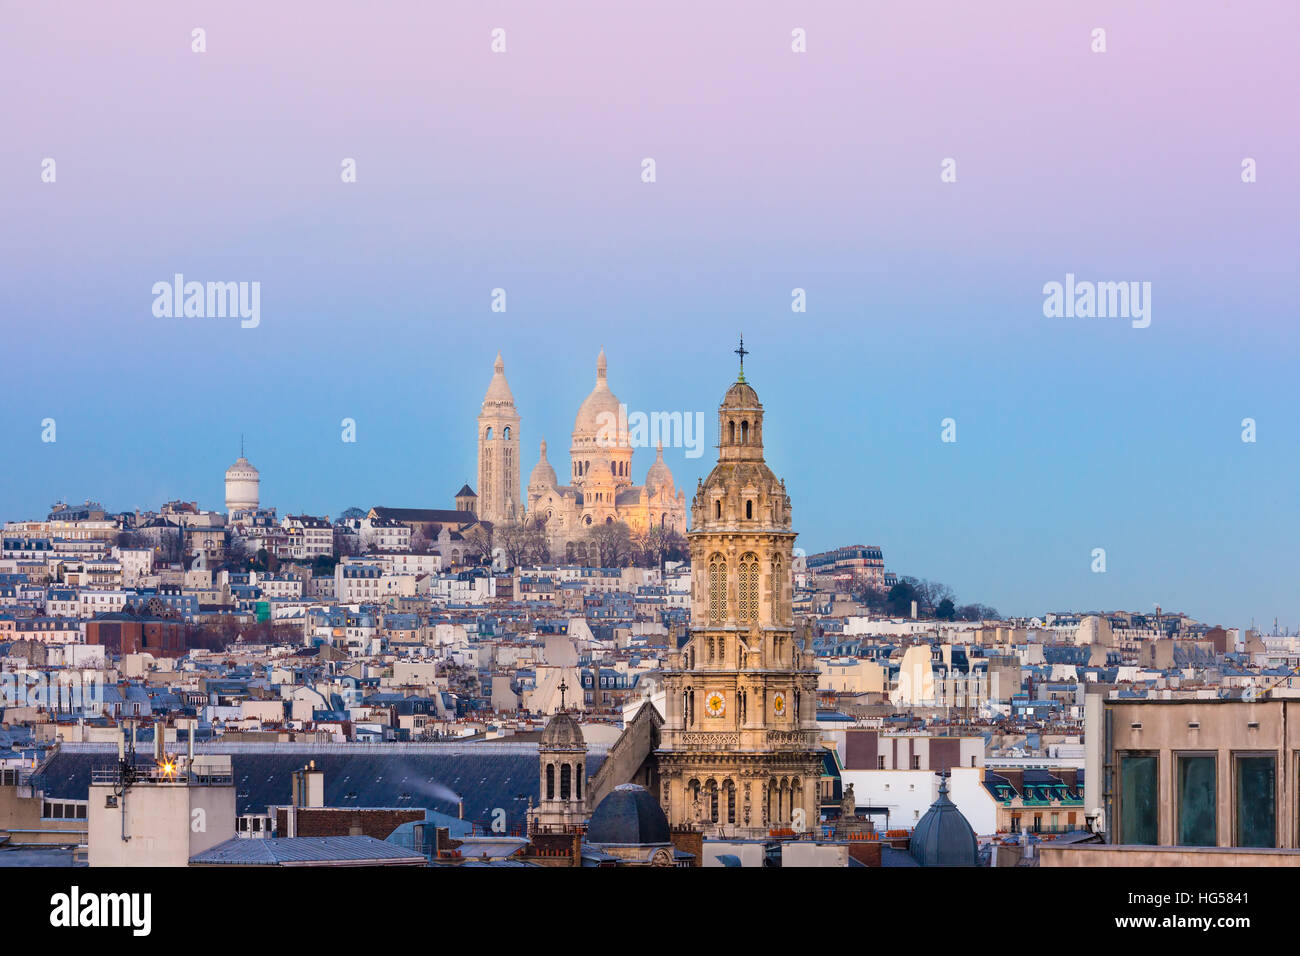 Sacre-Coeur Basilica at sunset in Paris, Fraance Stock Photo